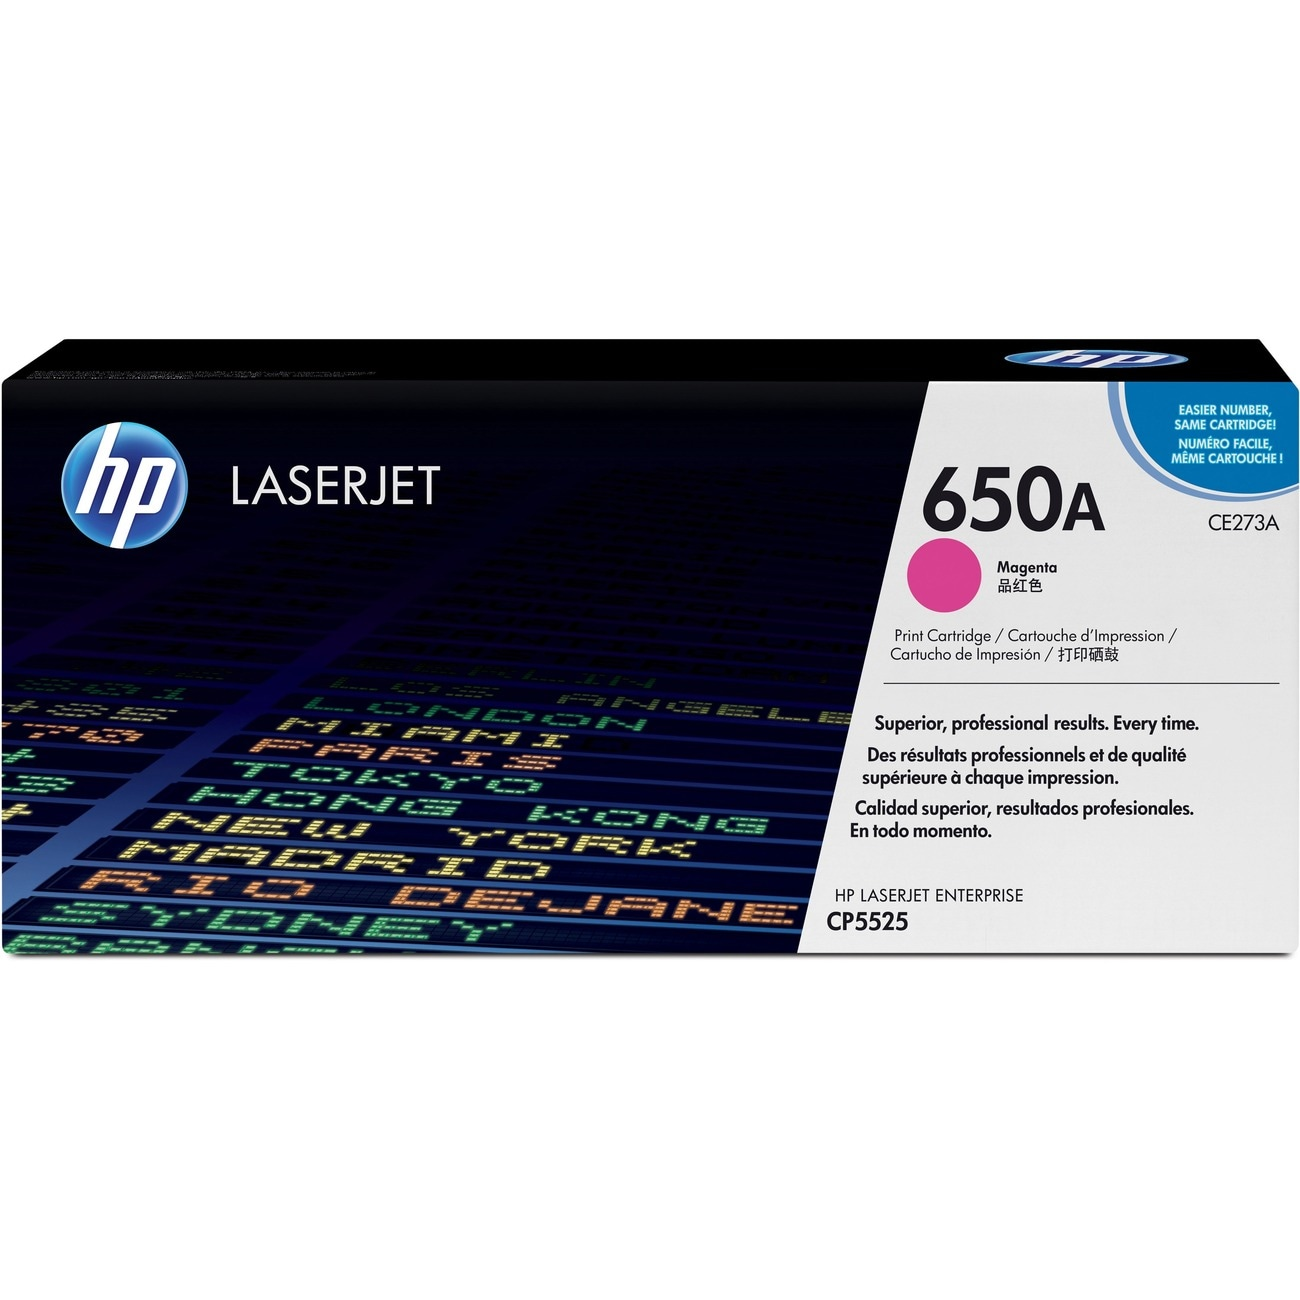 HP CE273A Toner Cartridge